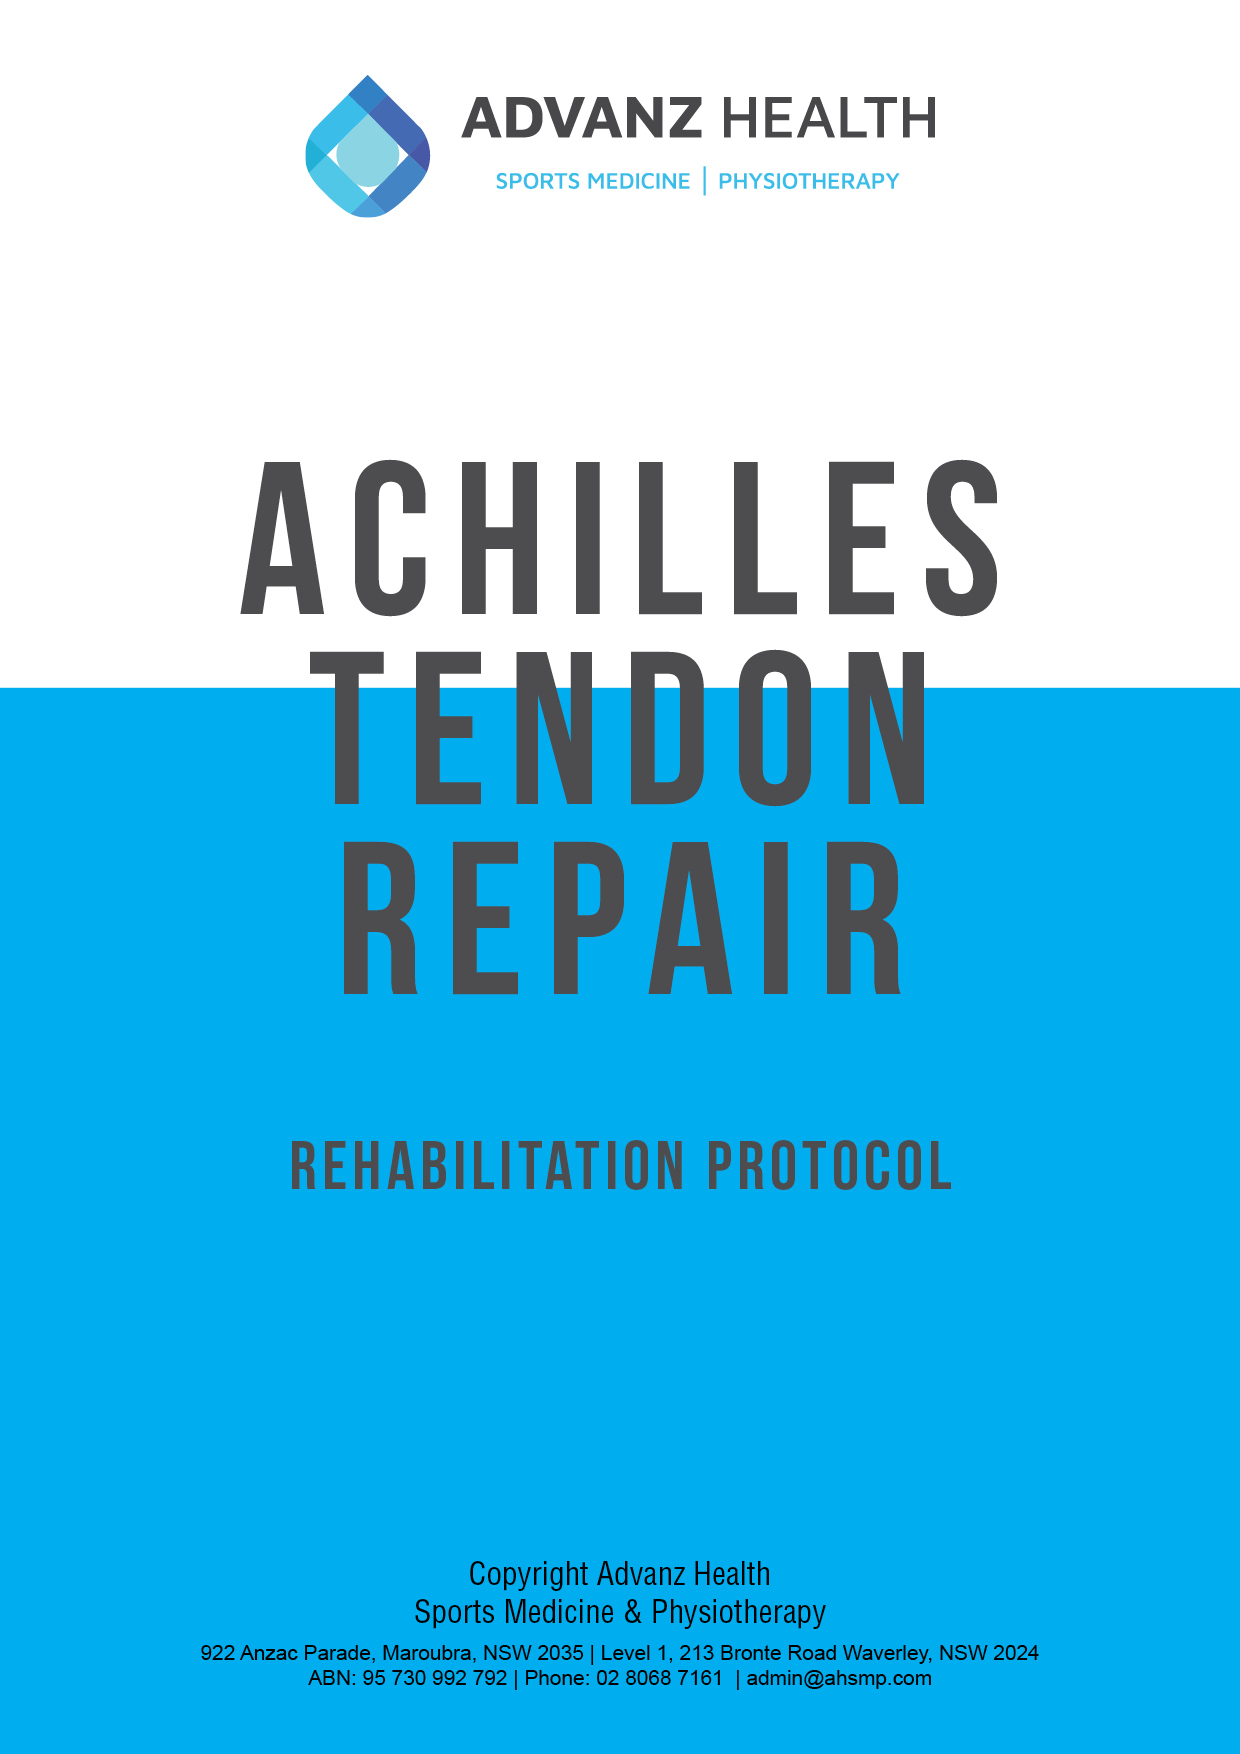 Achilles tendon cover image